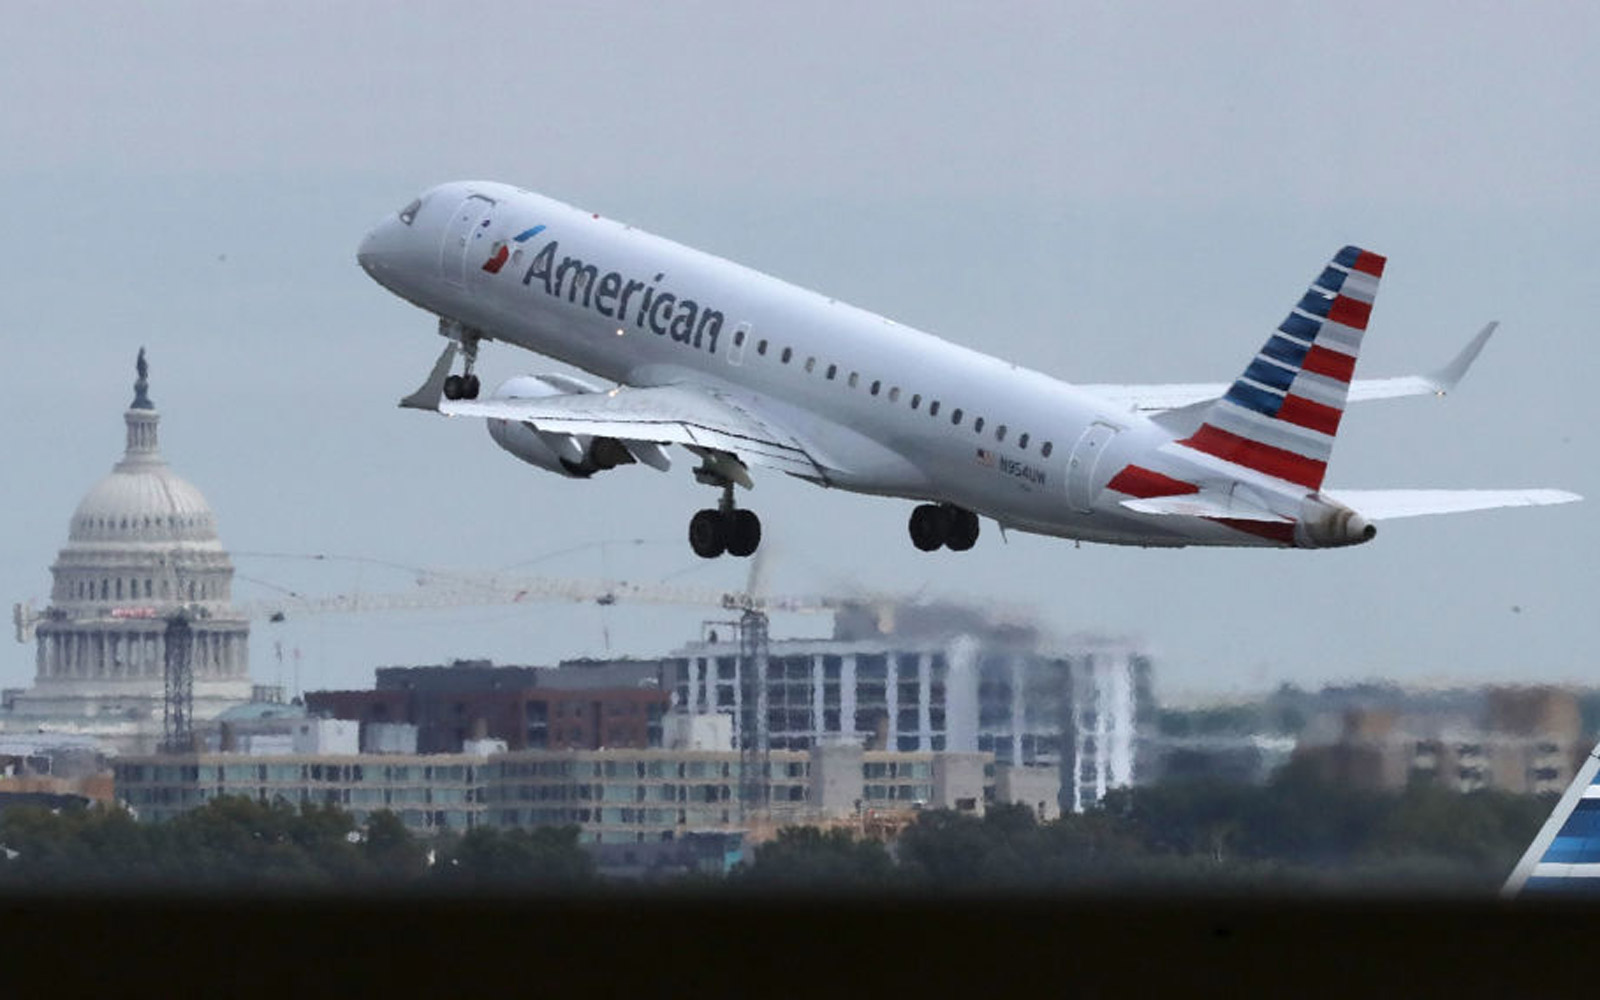 Pilots Are 'Stepping Up' to Fly 15,000 Christmas Week Flights After American Airlines Glitch